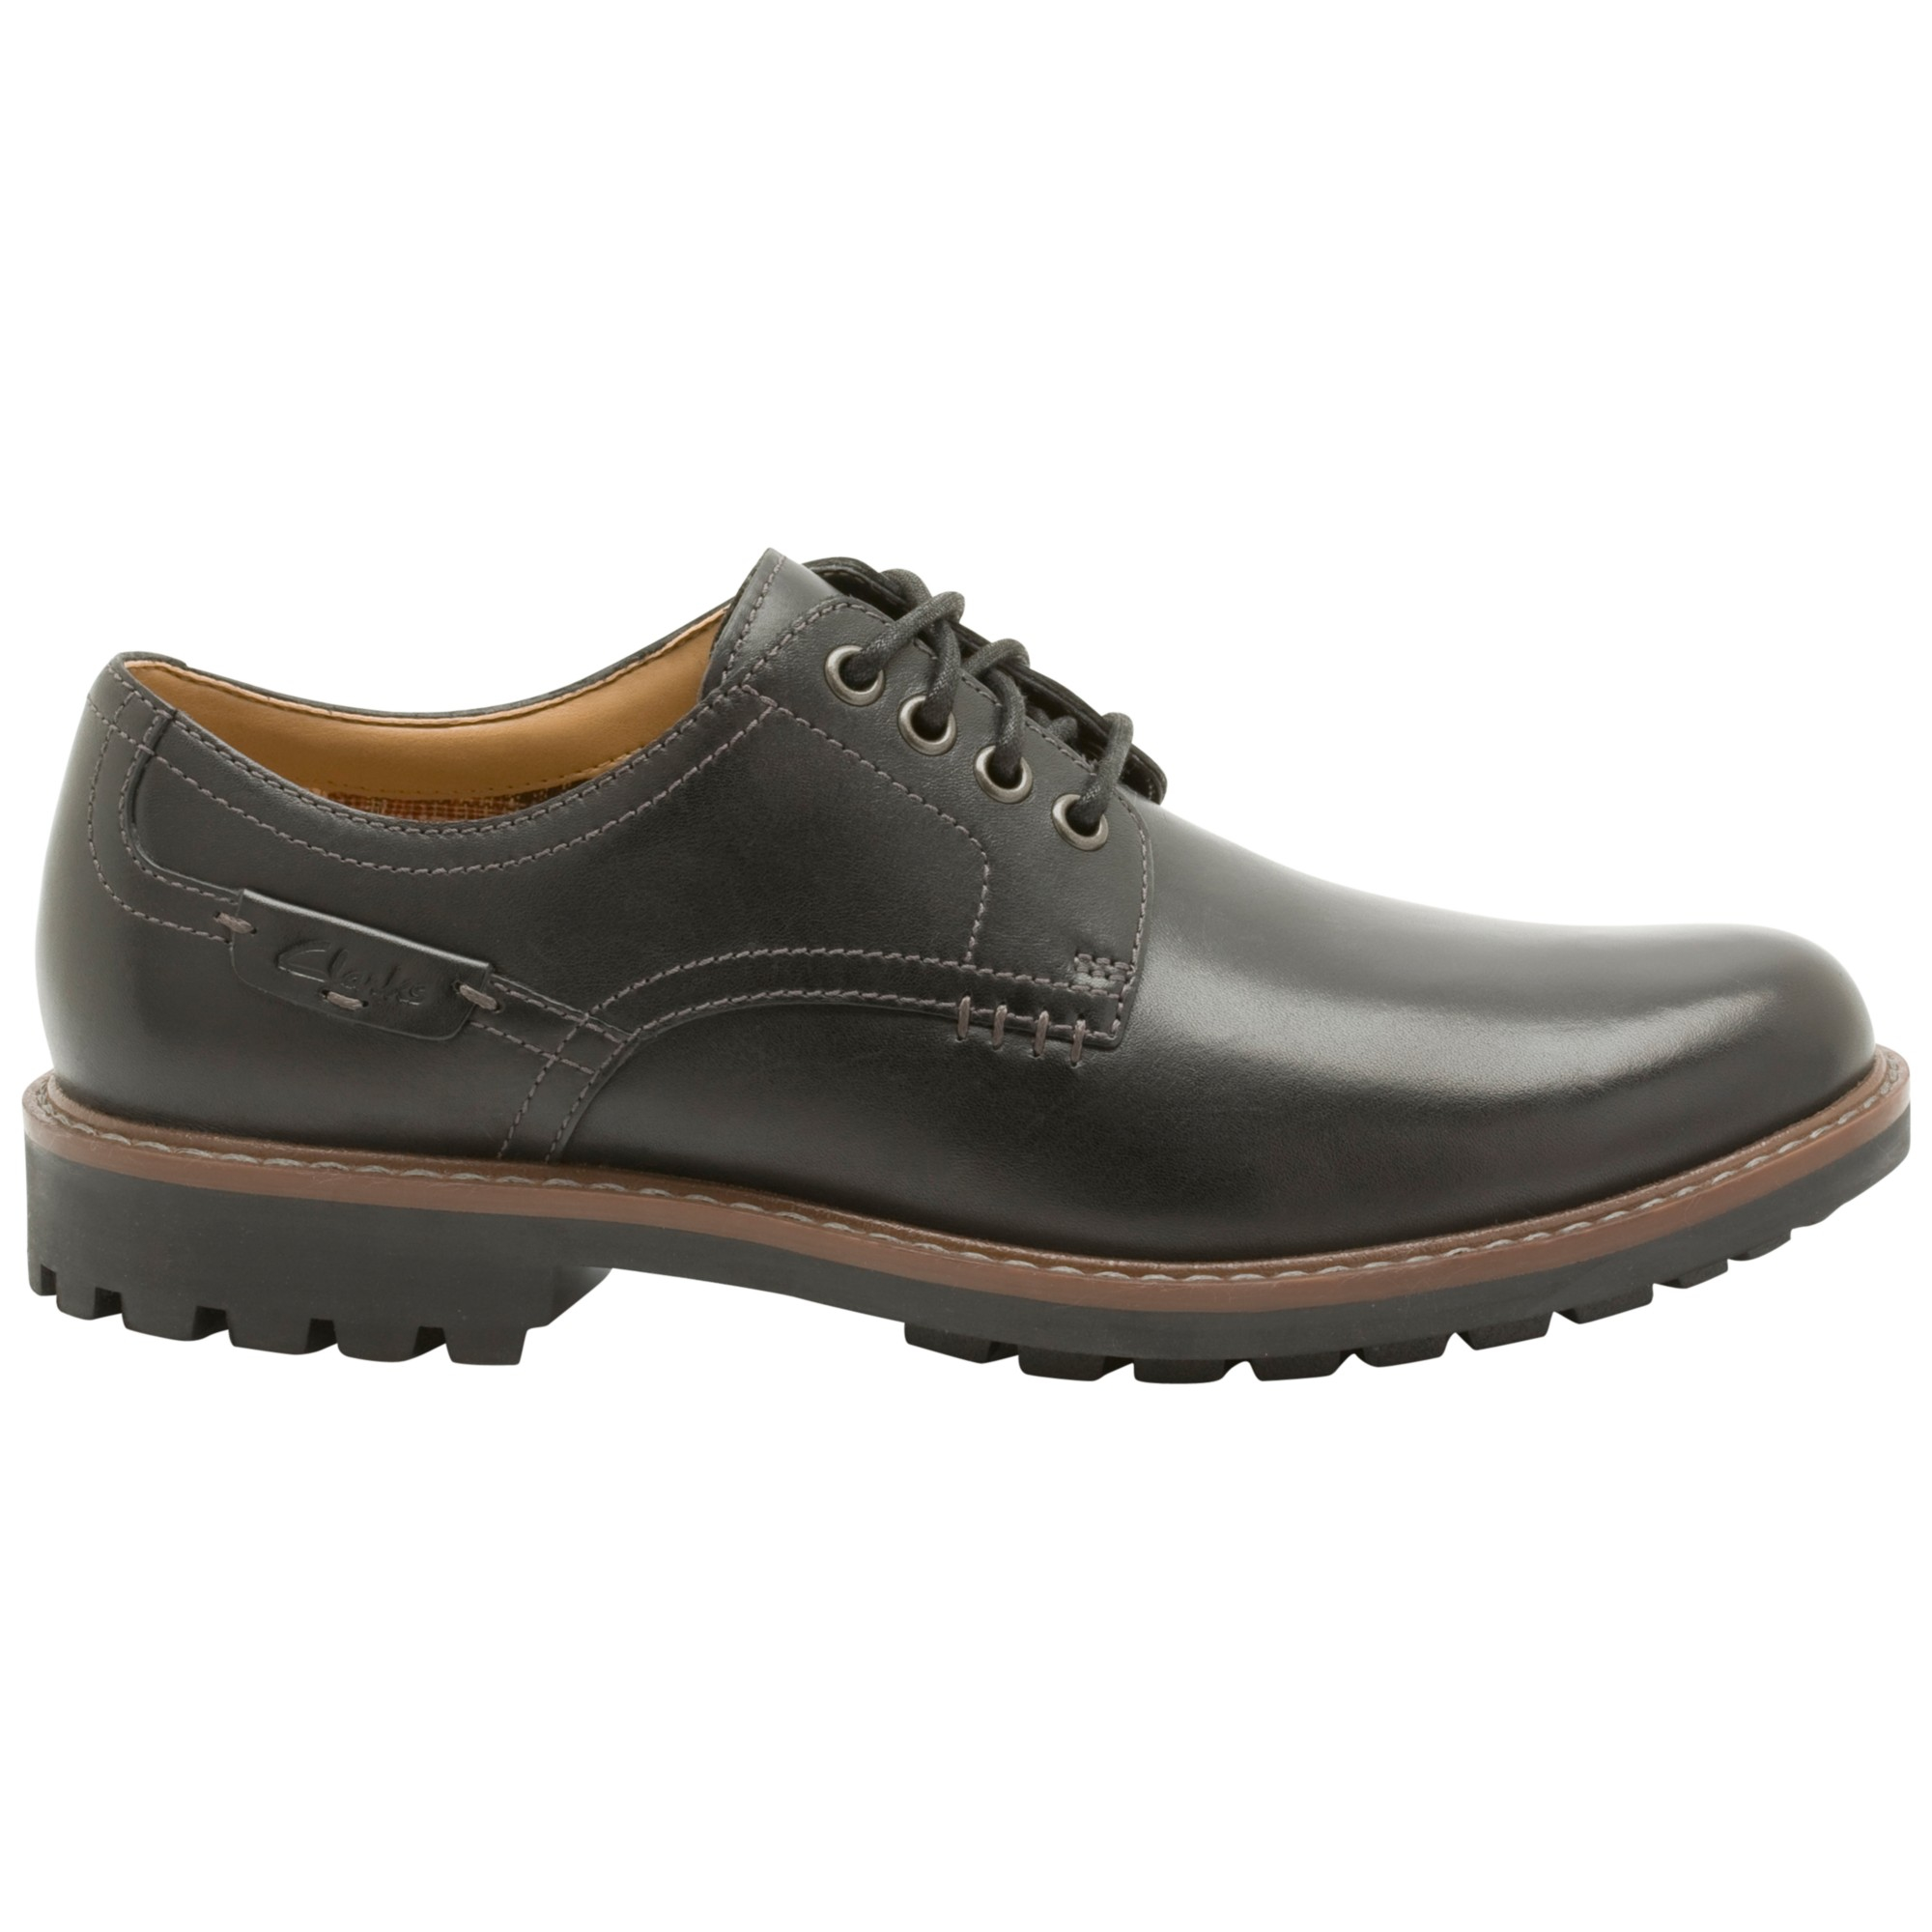 Clarks Derby shoes - timeless quality, urban style, and maximum comfort Derby shoes are ideal for a stylish look in the modern office or around town. The shoelace eyelets are stitched on top of the shoe vamp for a less formal look than Oxfords.